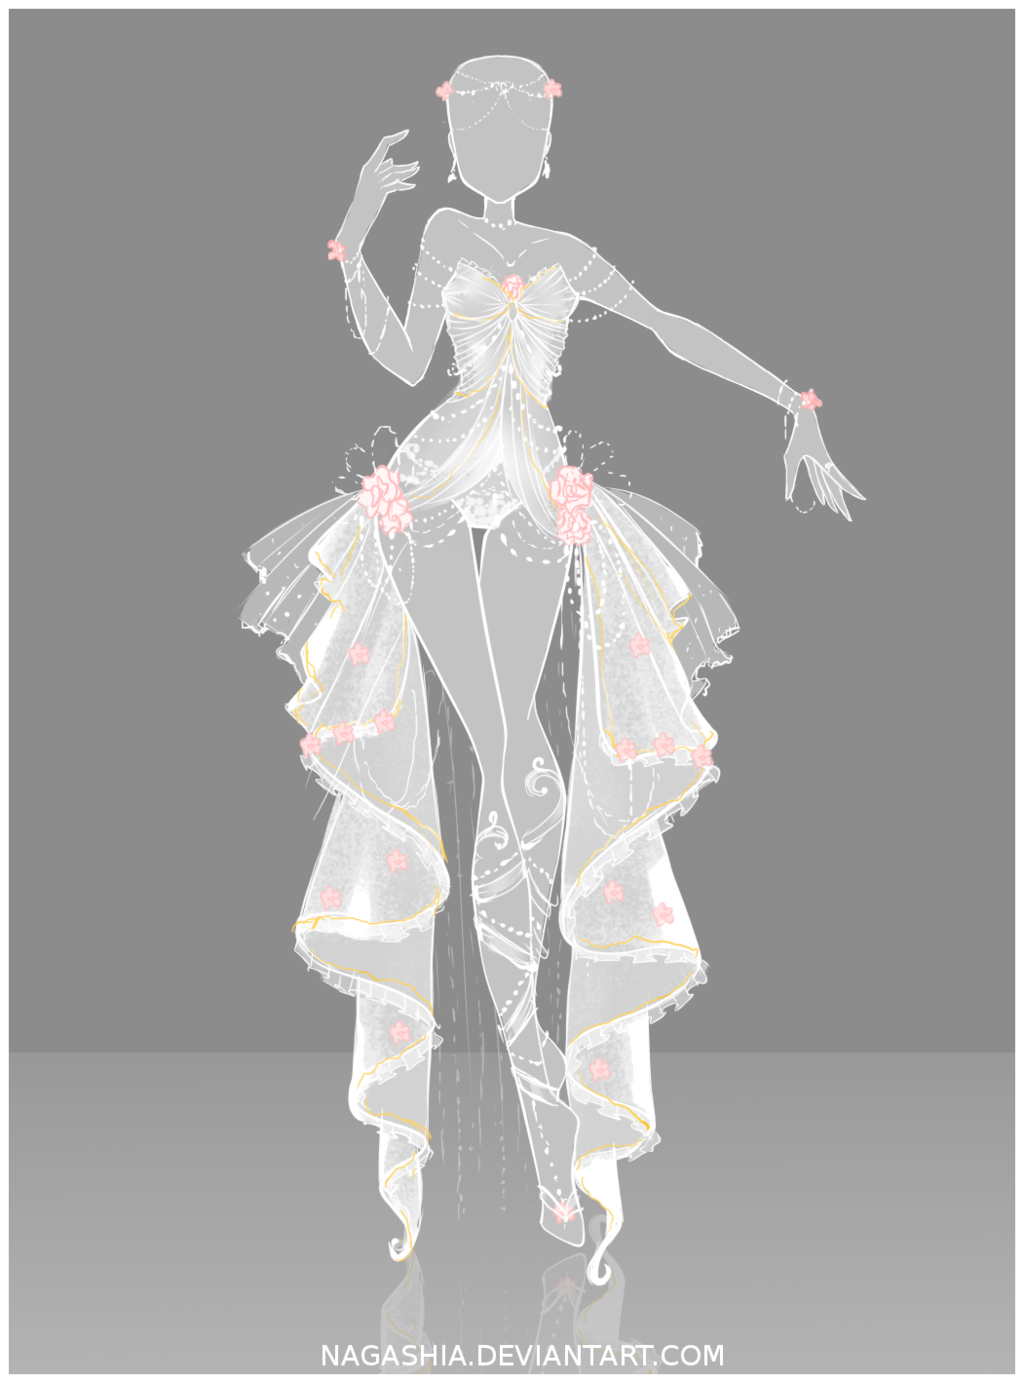 By Com deviantart Silverangel907 Outfit On RXSqX